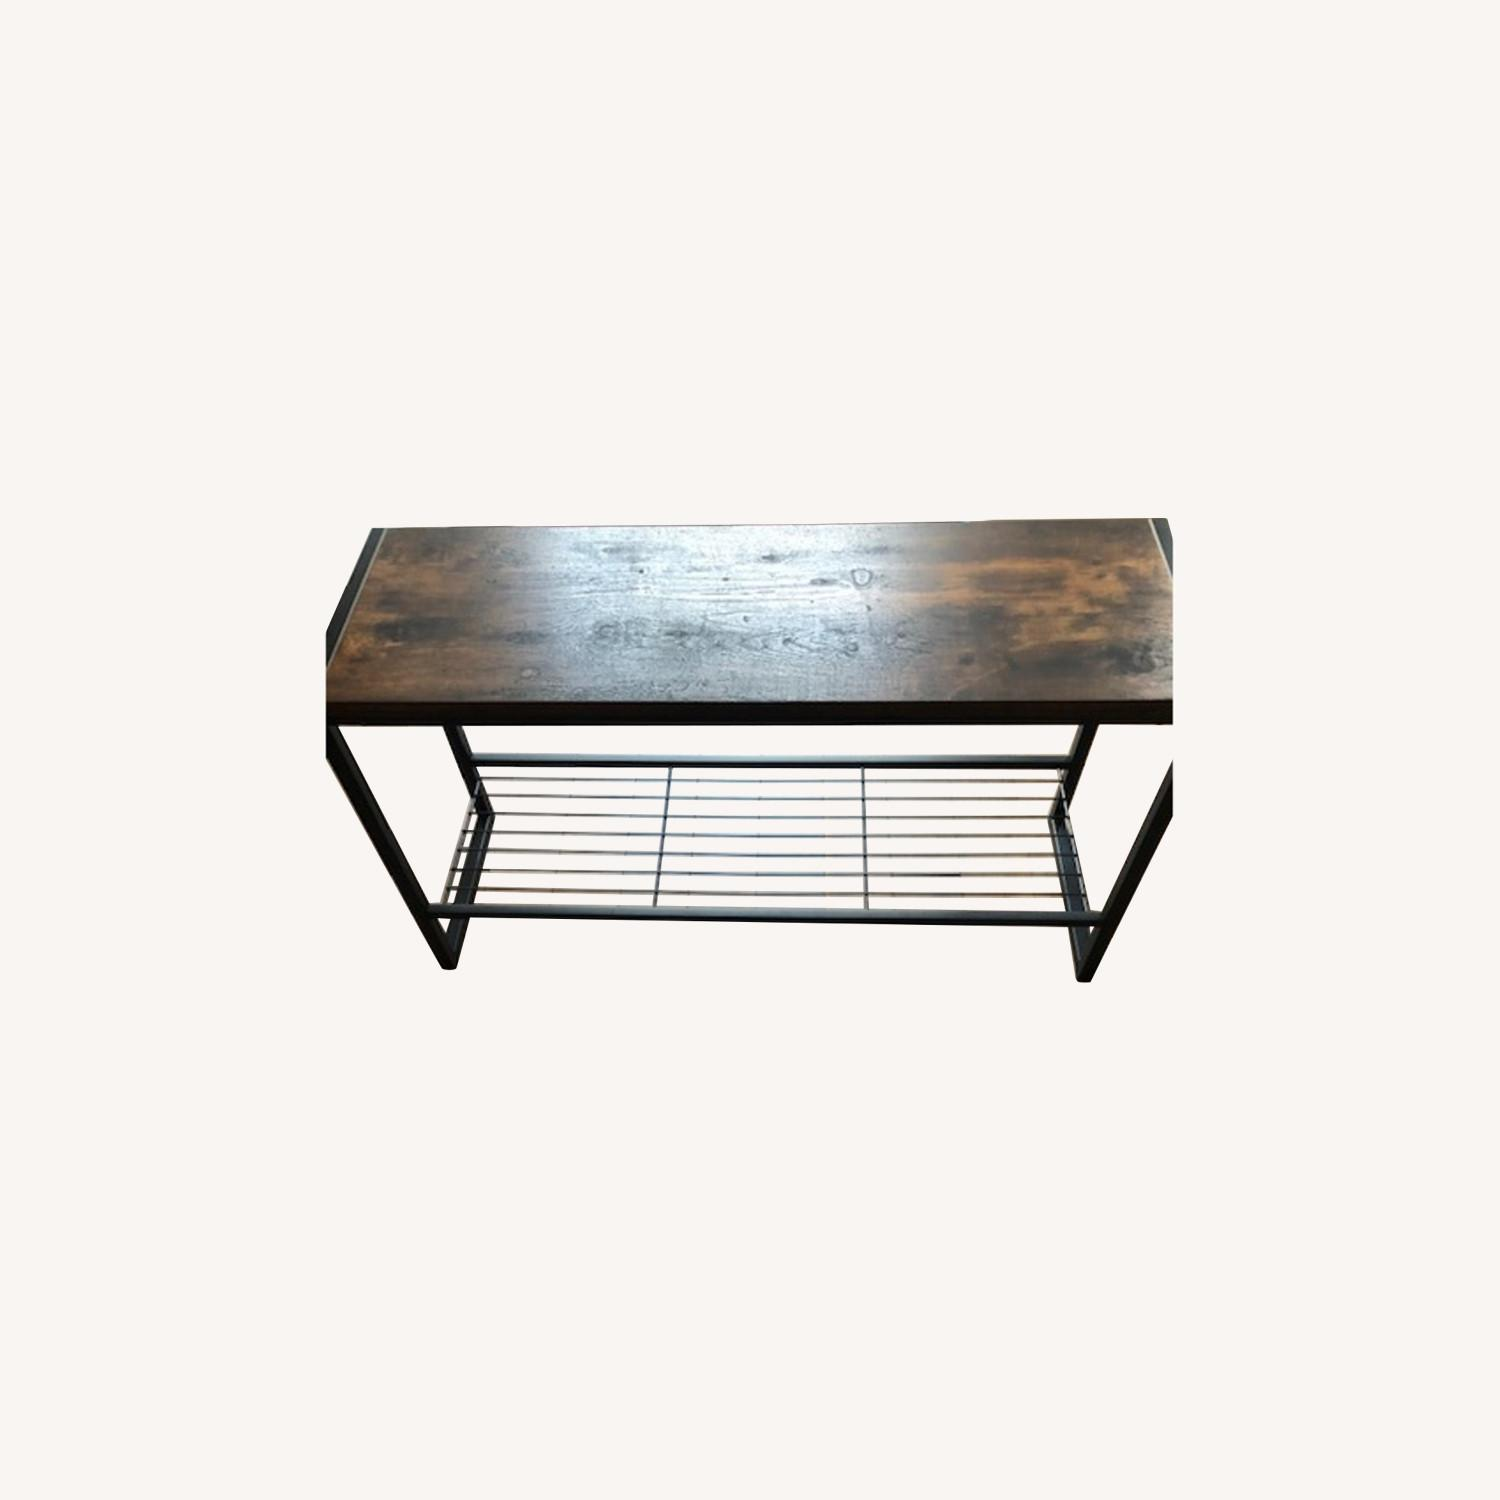 Whitmores Modern Industrial Entry Way Bench - image-0